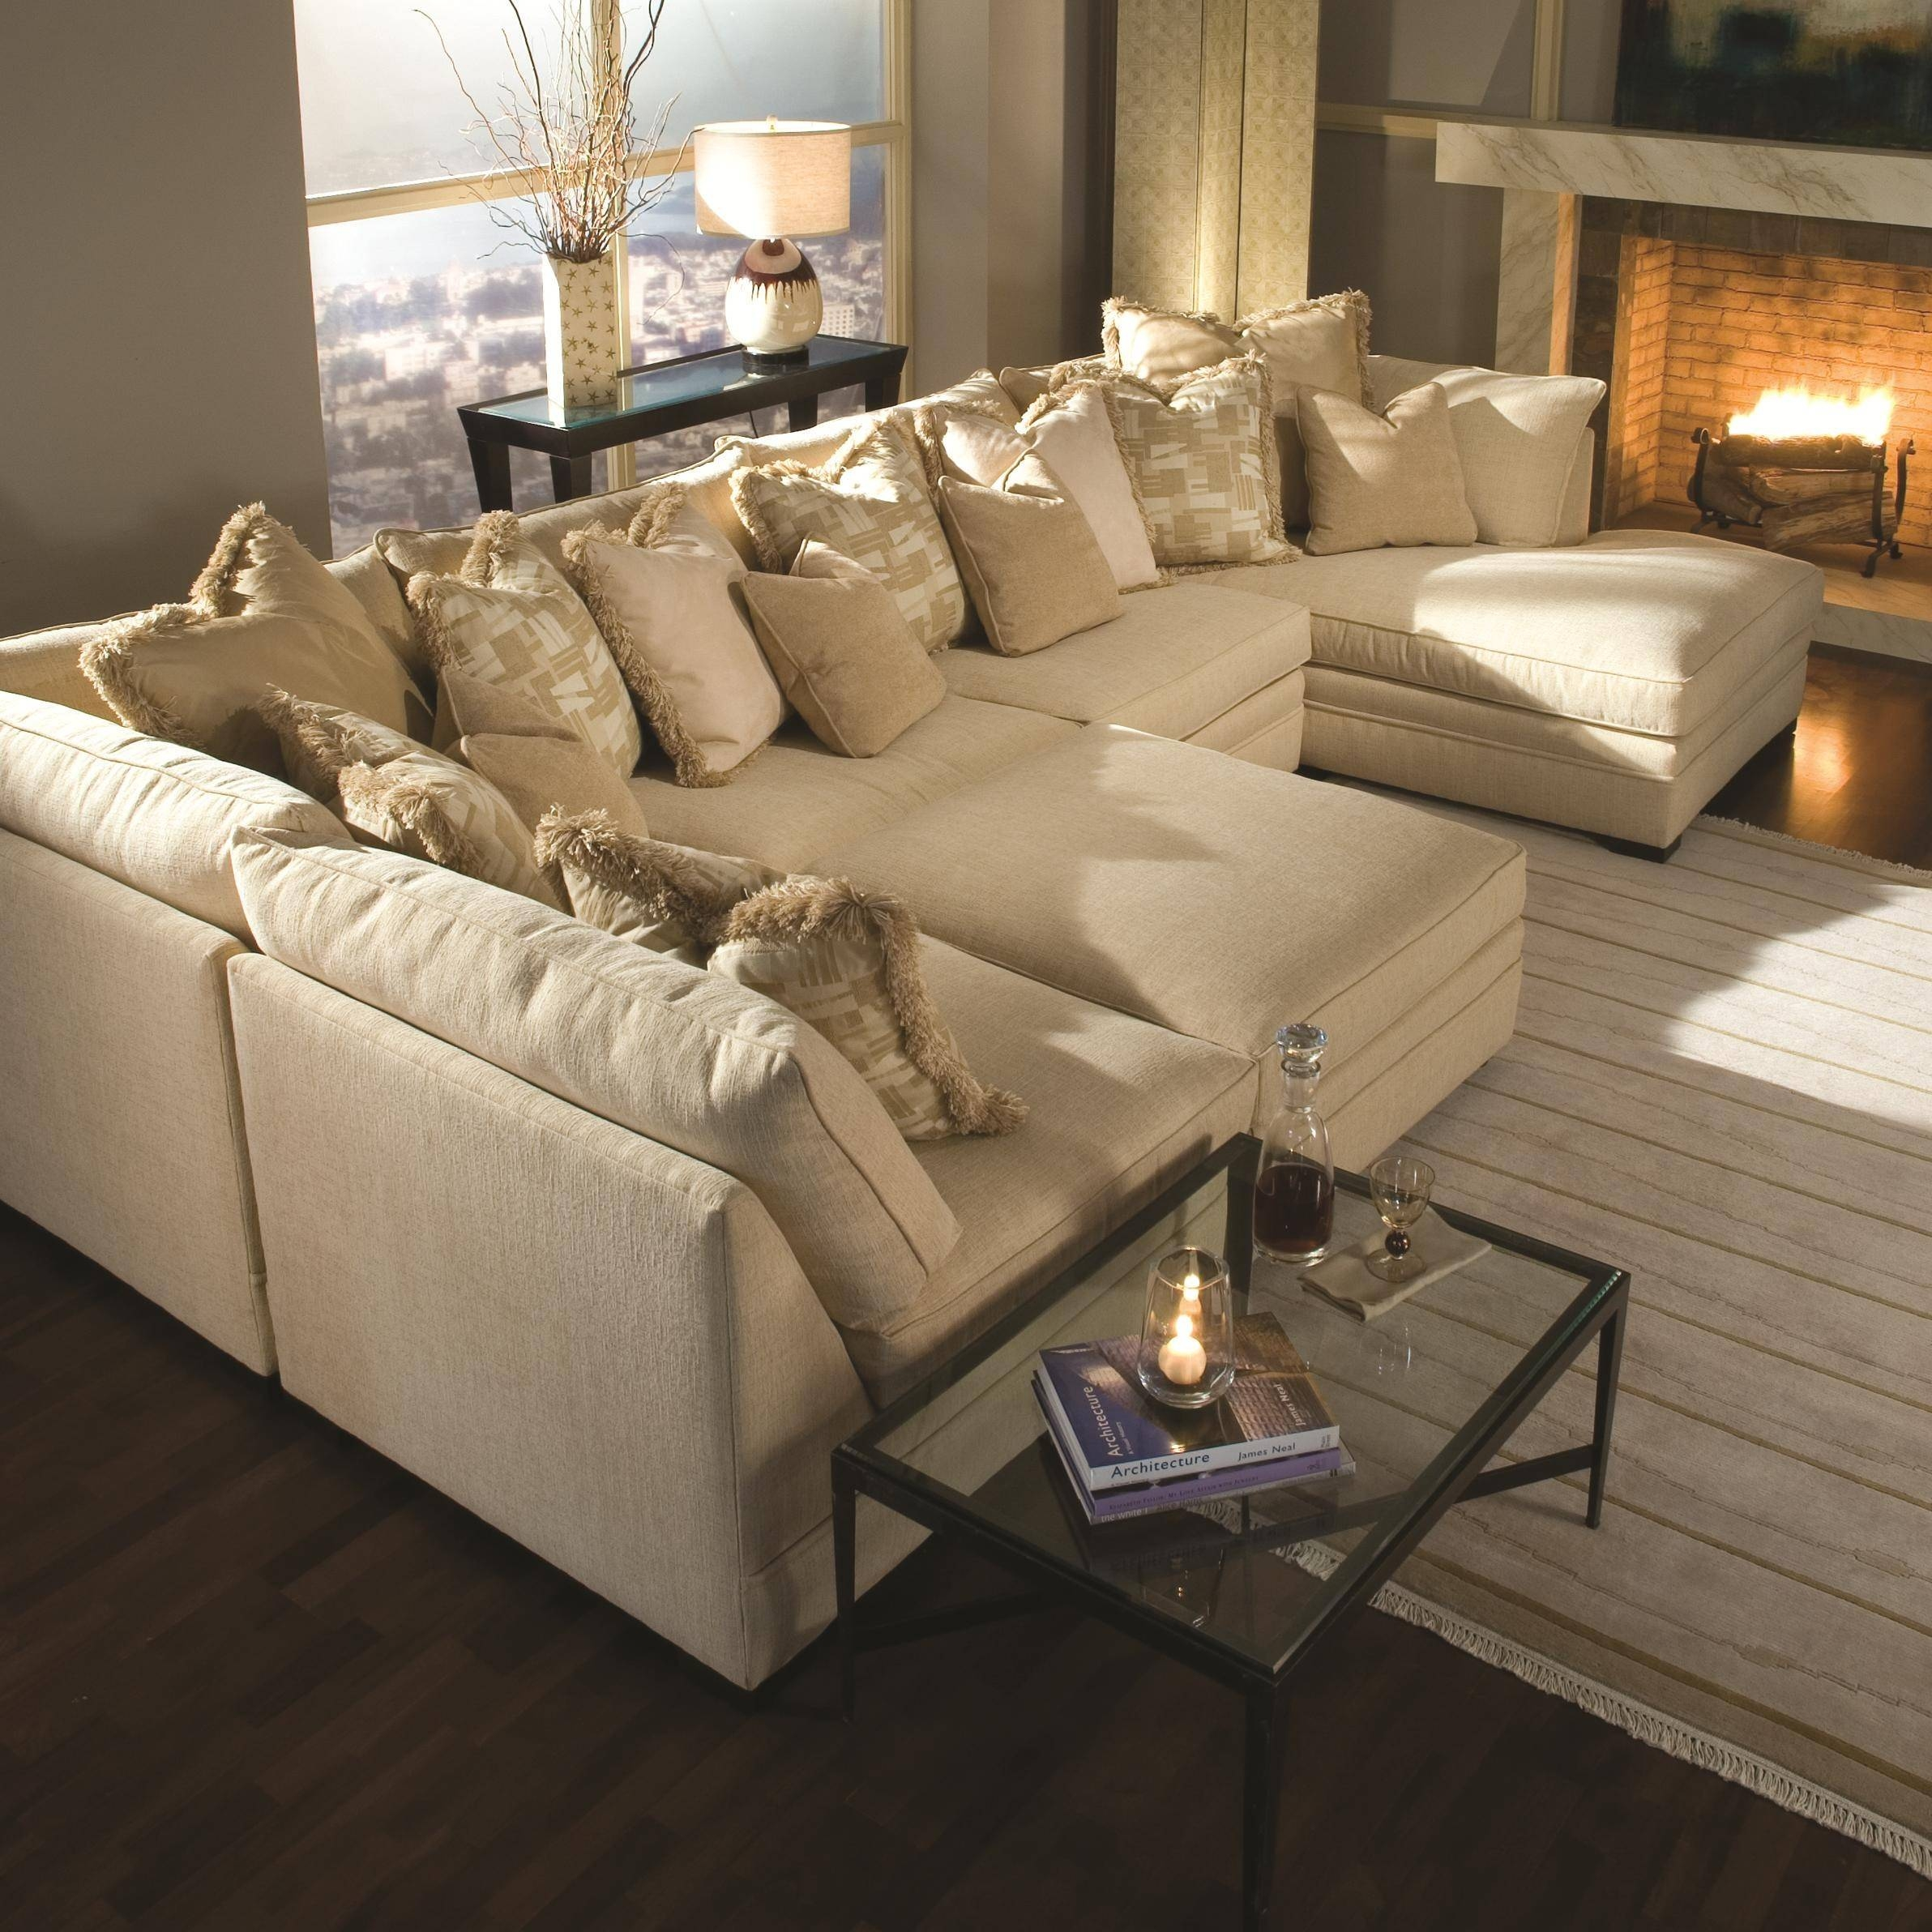 12 Ideas Of 10 Foot Sectional Sofa within 10 Foot Sectional Sofa (Image 9 of 30)